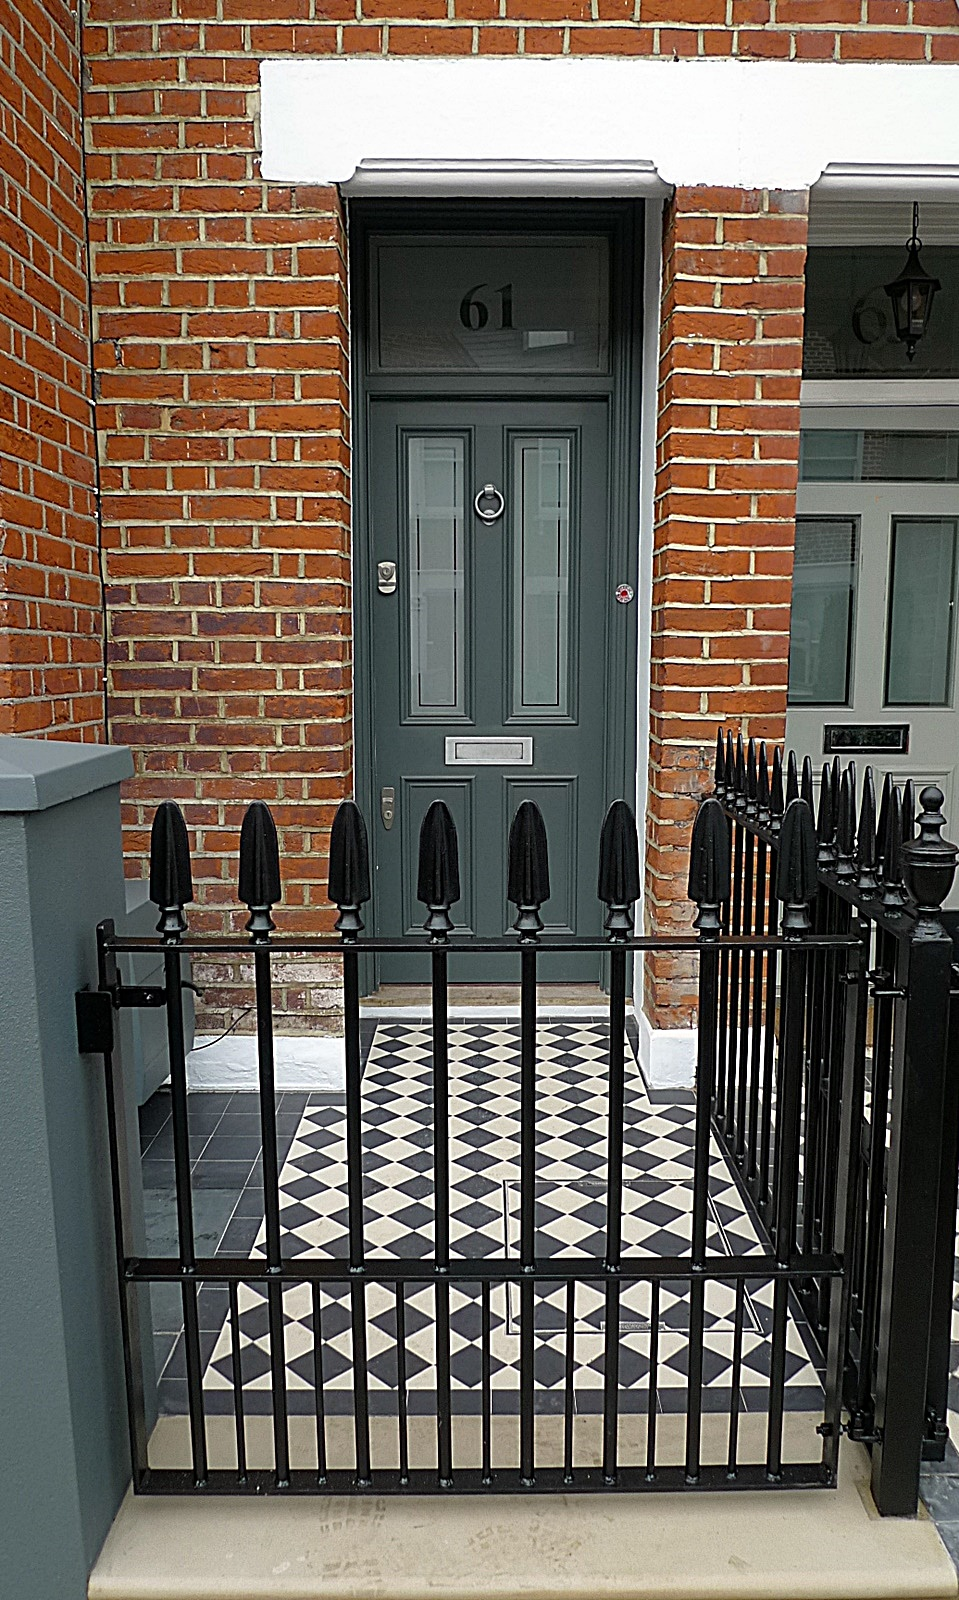 Grey colour scheme walls iron Balham formal front garden London Battersea Clapham